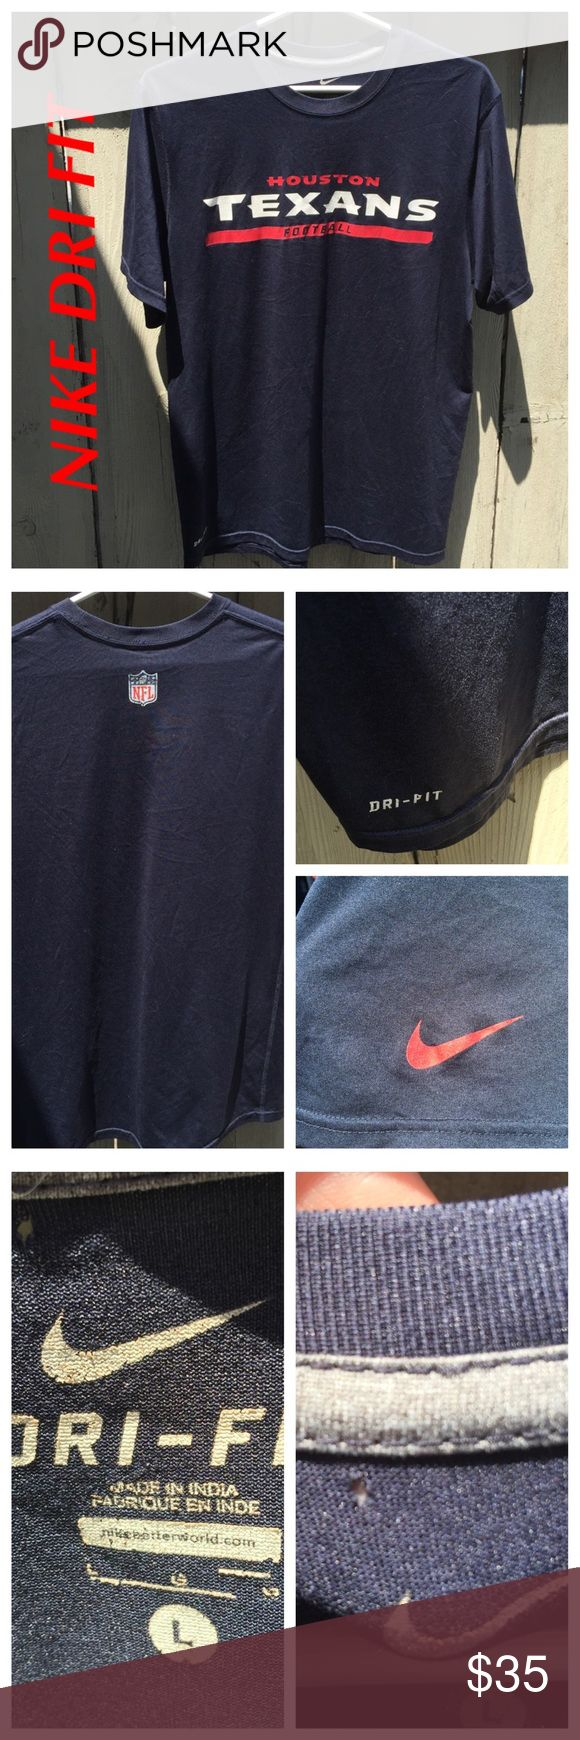 🏈NIKE! AND MY FIRST MENS/UNISEX LISTING!🏈 🏈NIKE DRI FIT UNISEX/MENS- TEXANS NFL JERSEY/TEE. COLLECTORS EDITION! Think JJ WATT, hoo-rah! SIZE LARGE IN MENS. In excellent condition. One tiny hole near tag; see photo. See all other details above in photo #4. Ask all questions before purchasing. Price firm unless bundled.🏈 Nike Shirts Tees - Short Sleeve